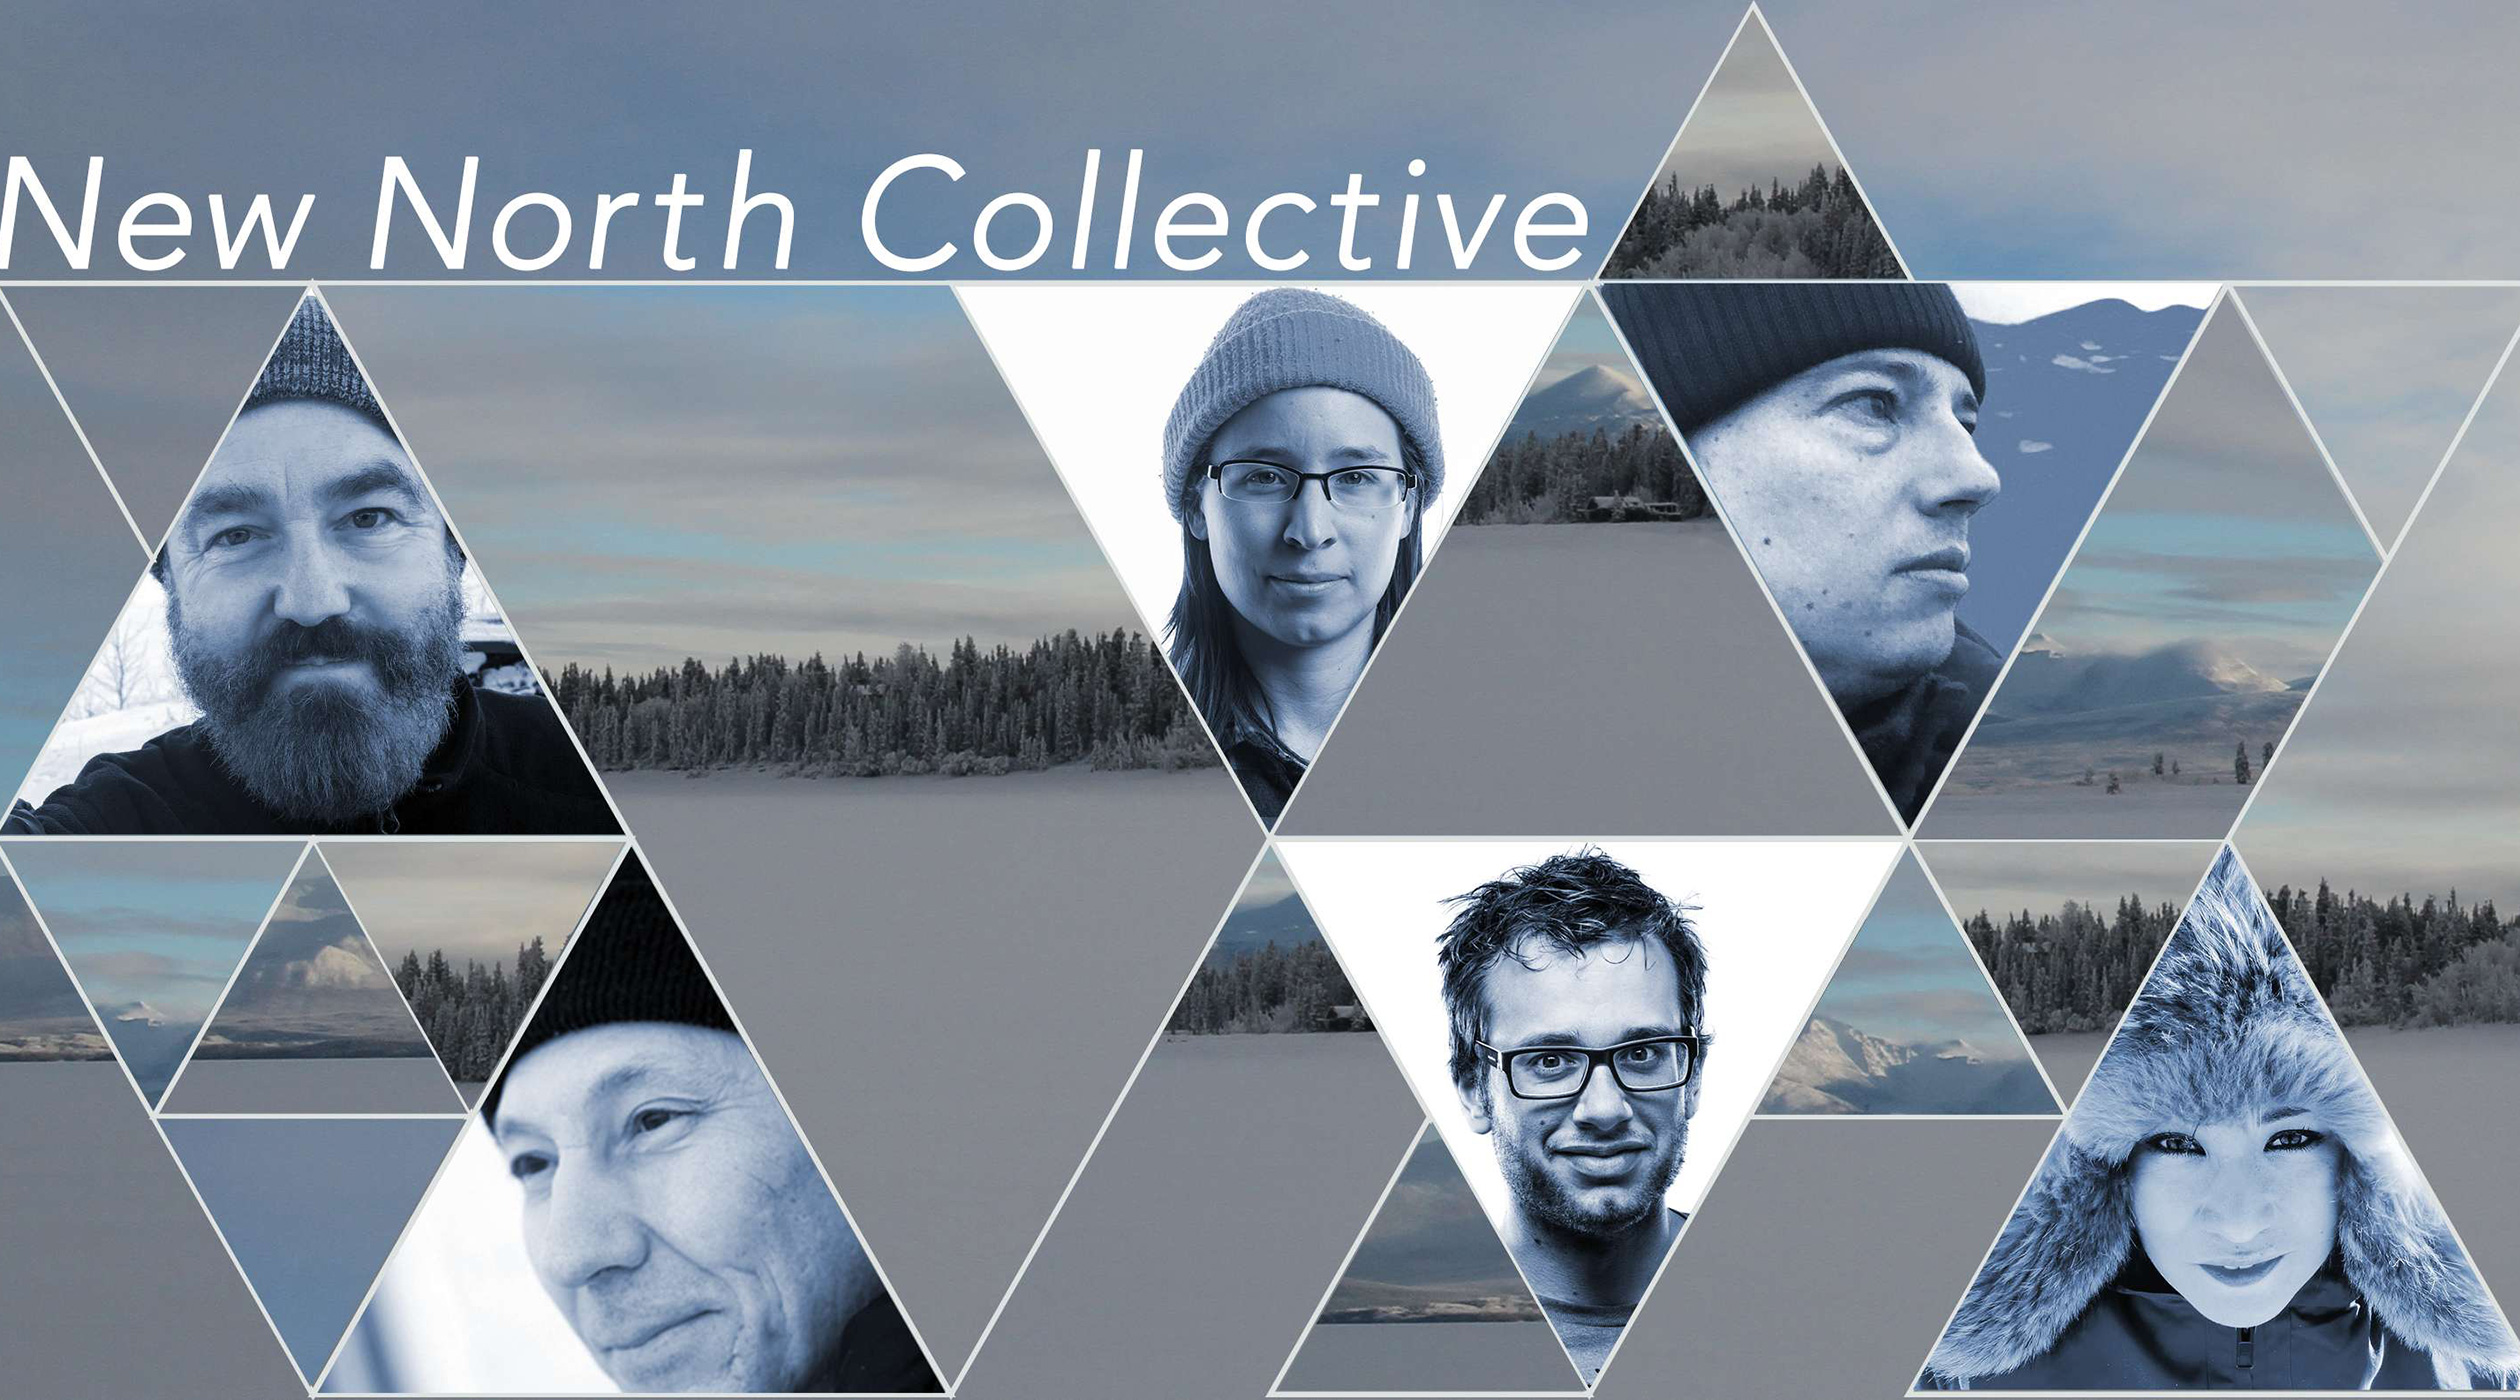 New North Collective